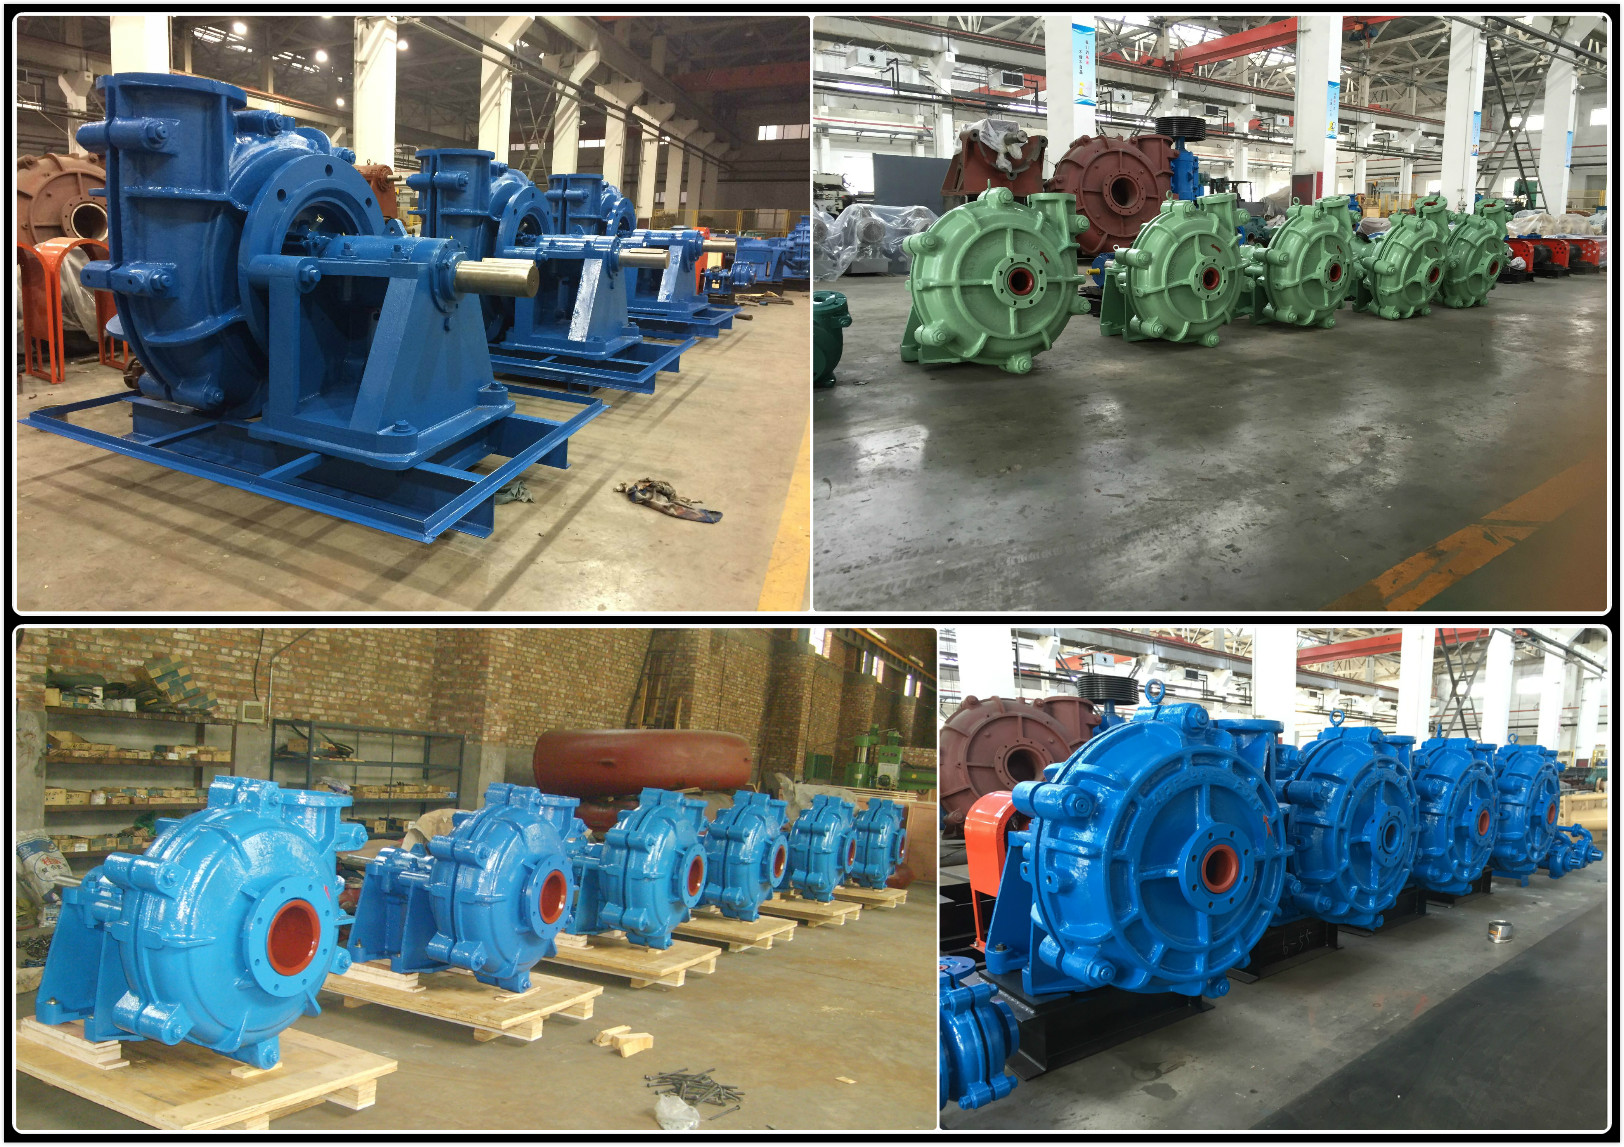 Warman Slurry Pumps